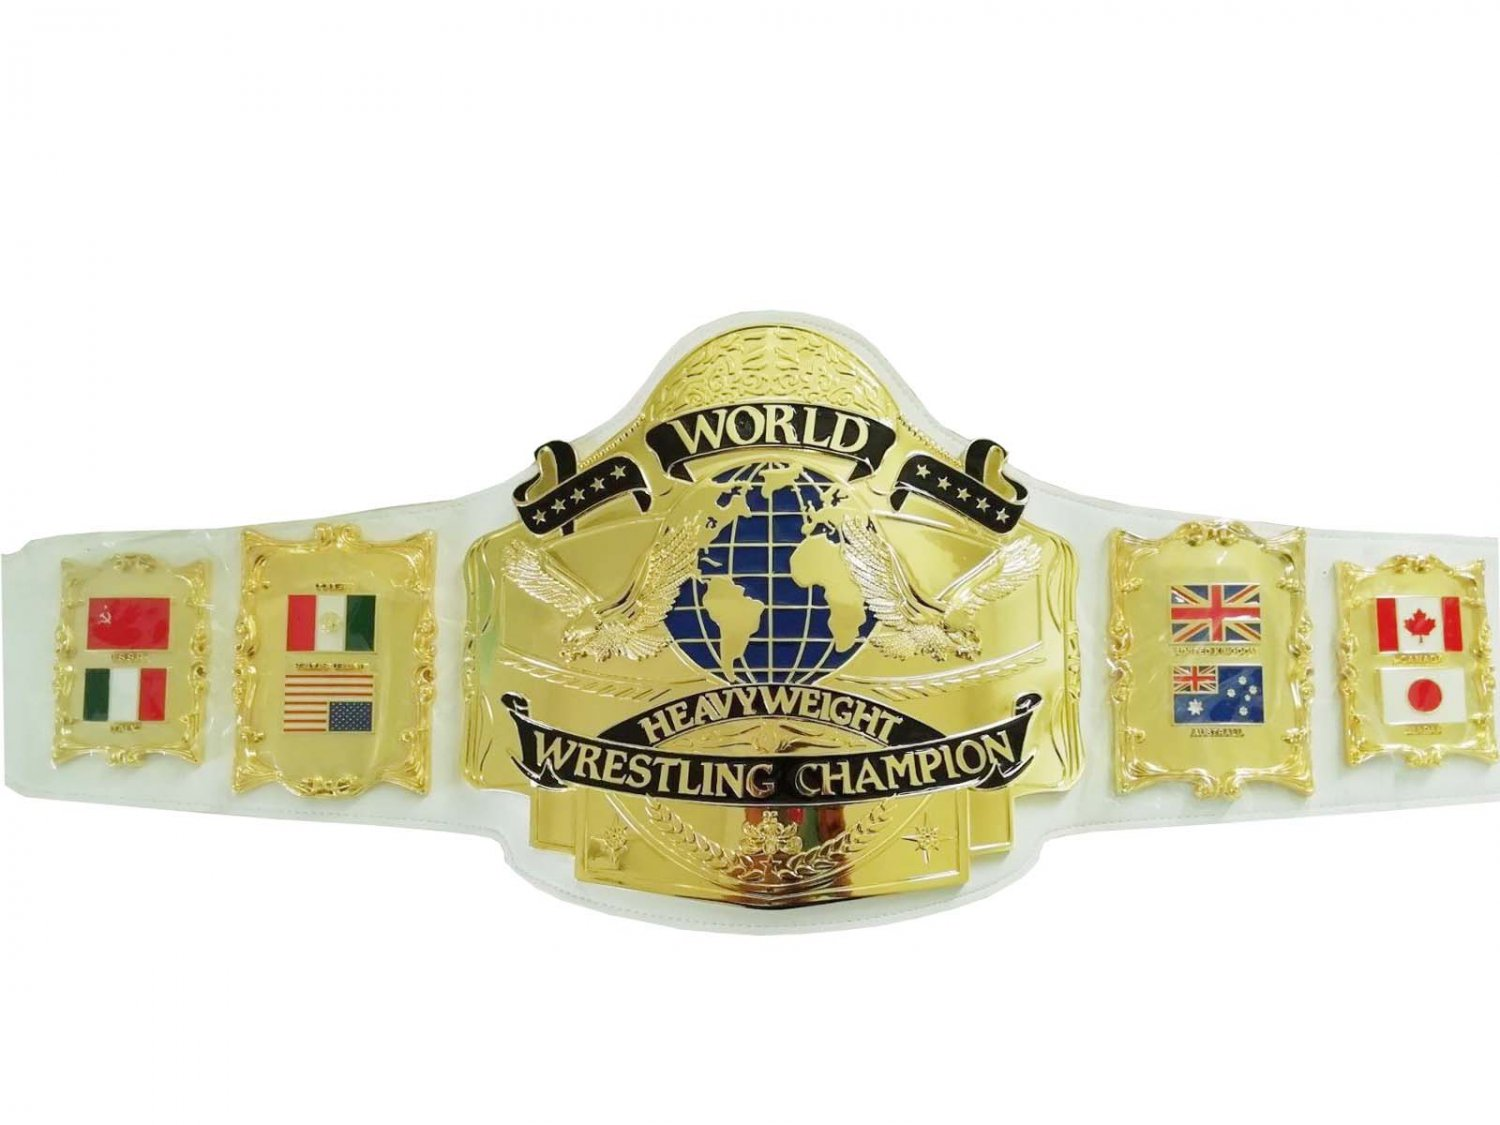 ANDRE 87 WORLD HEAVYWEIGHT WRESTLING CHAMPIONSHIP BELT WHITE LEATHER STRAP ADULT SIZE